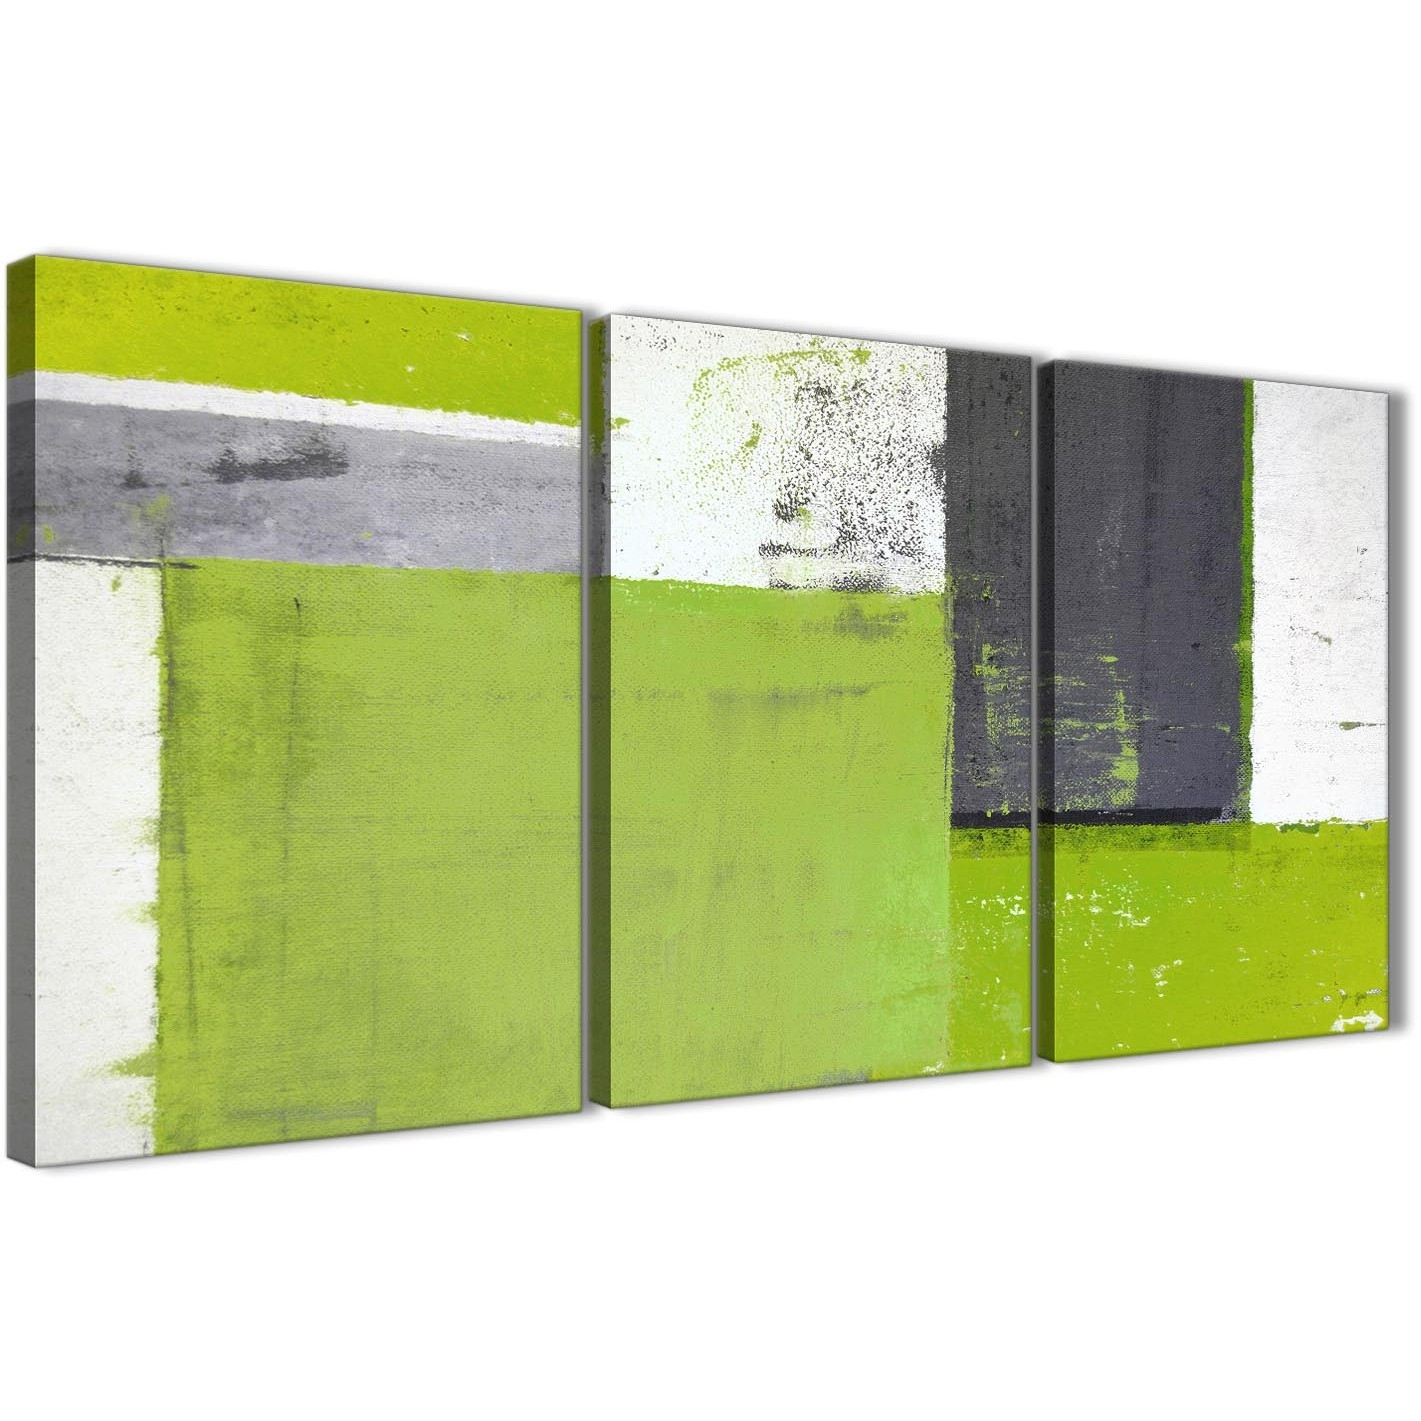 Lime Green Grey Abstract Painting Canvas Wall Art Print – Multi Set In Current Green Wall Art (Gallery 2 of 20)